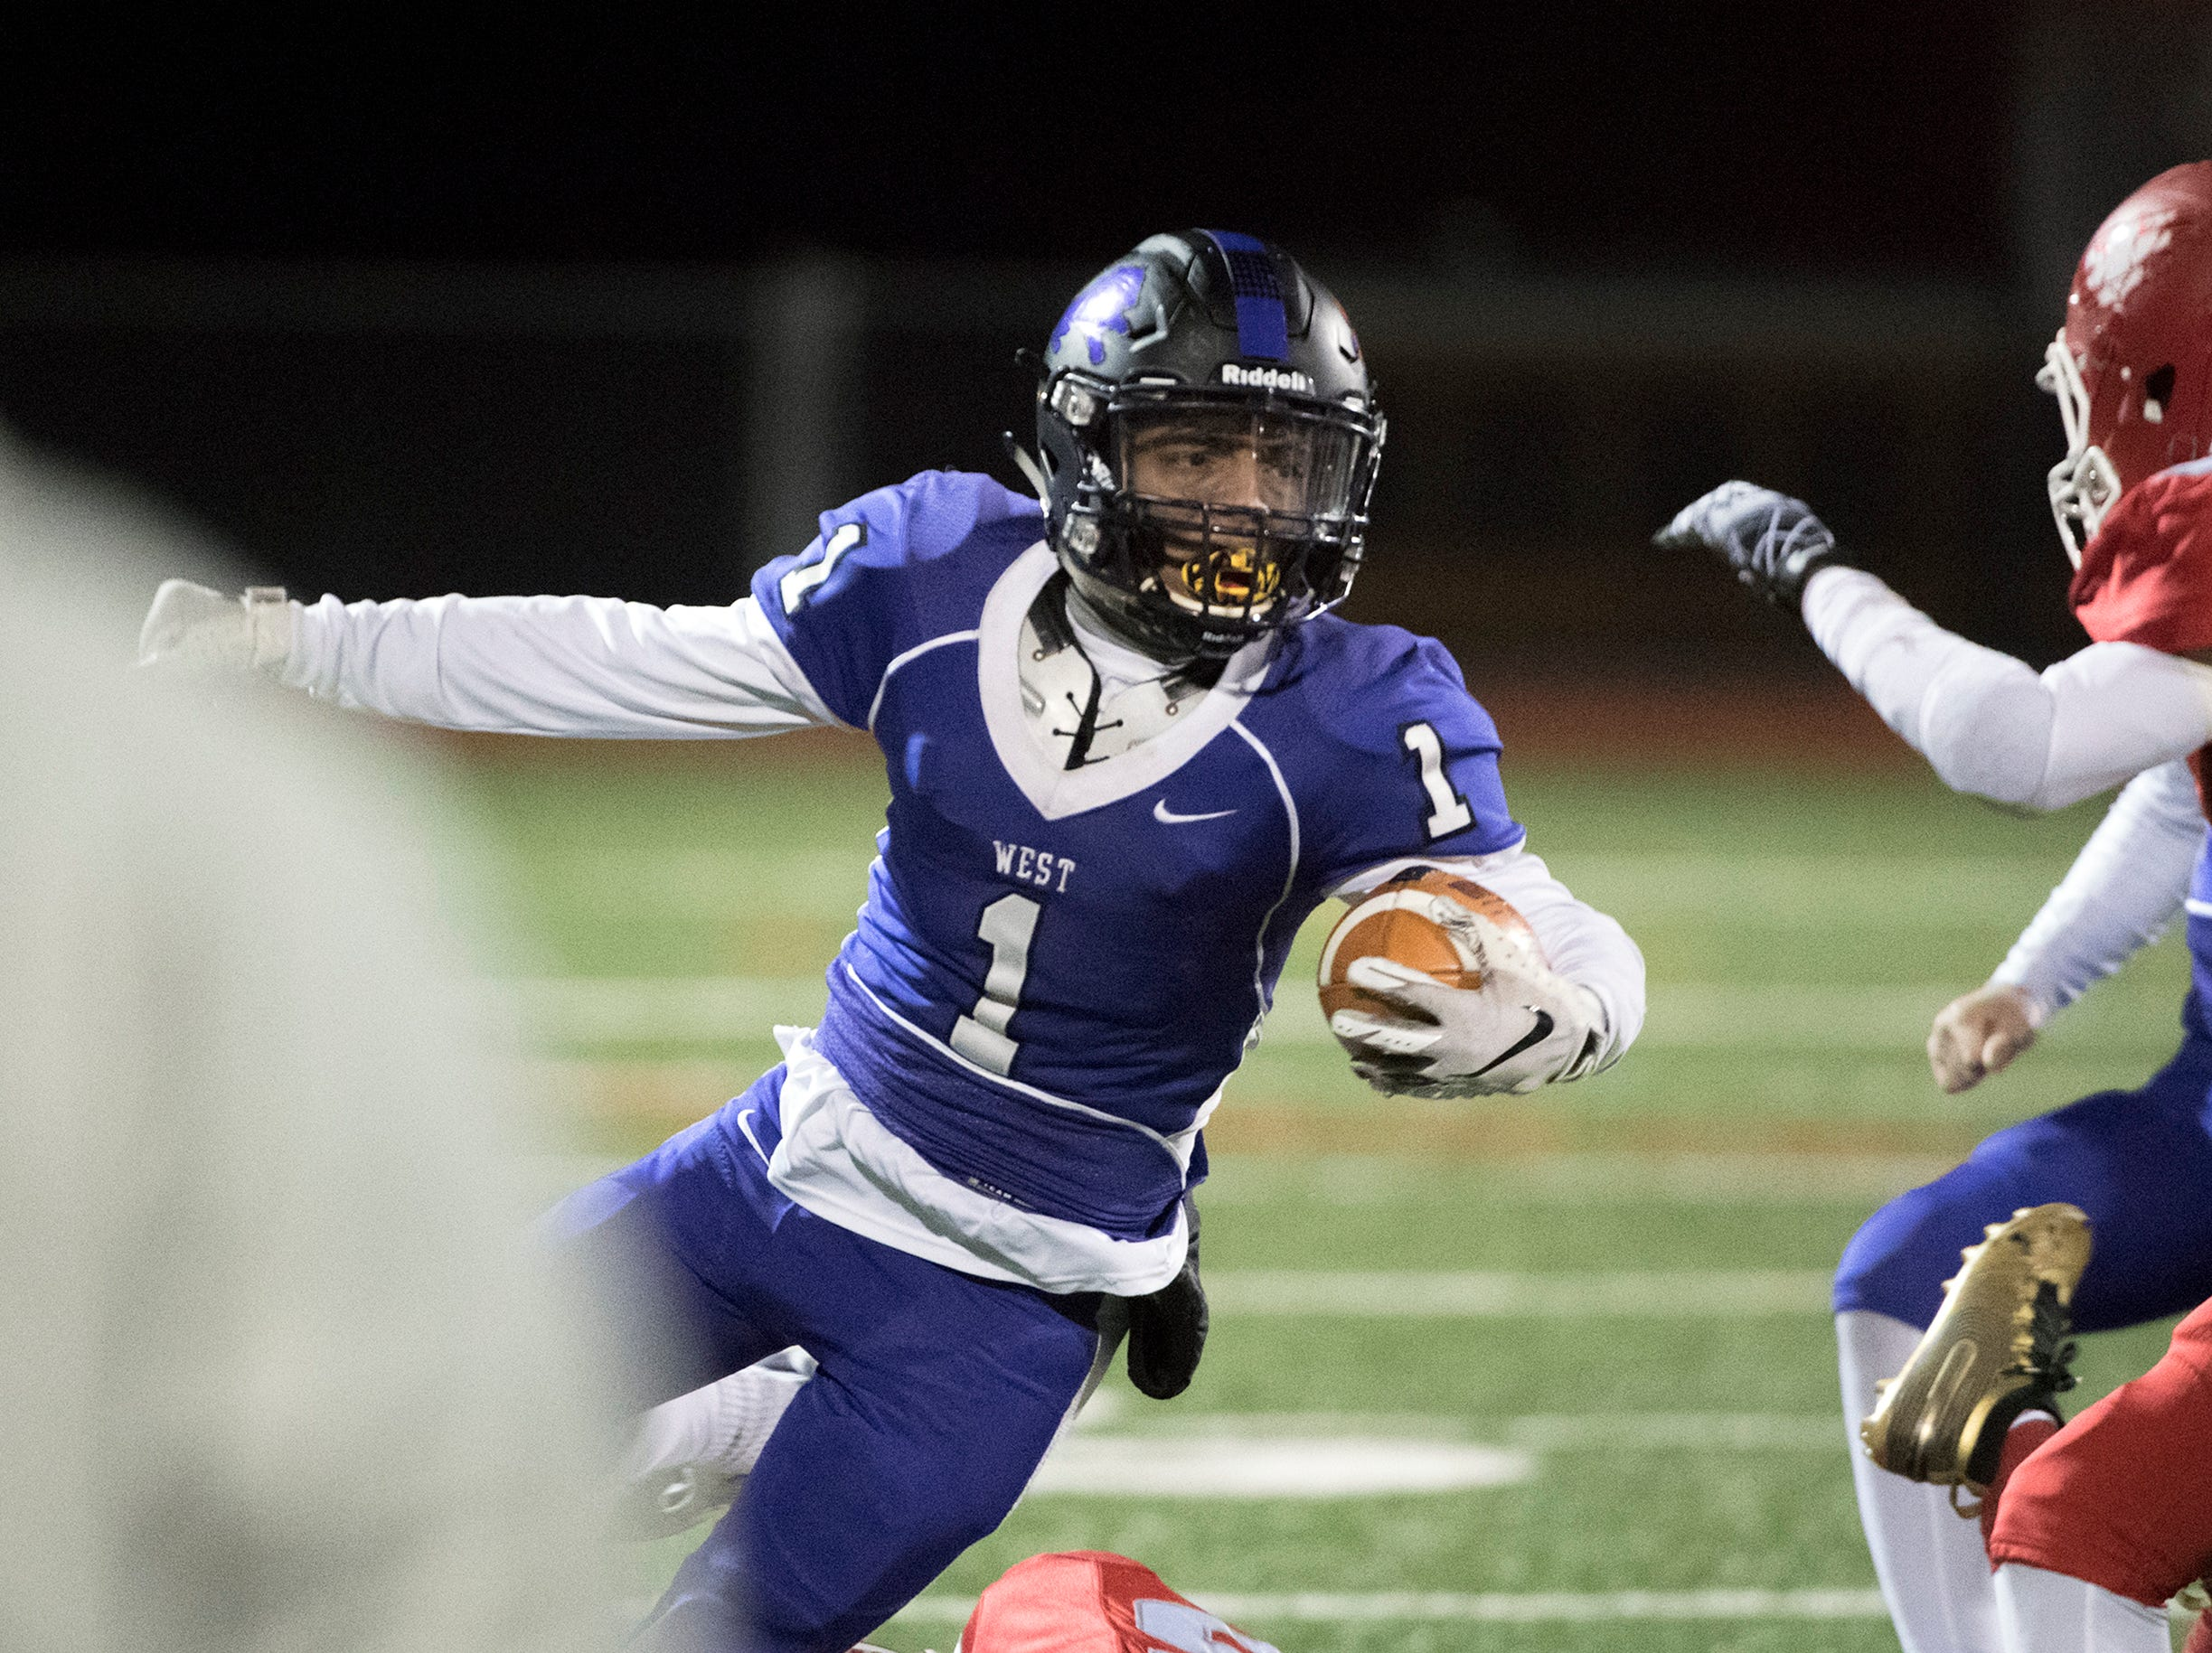 West's Carlos Gomez Jr. (1) carries the ball during an annual East-West game Wednesday, Nov. 21, 2018 at Cherry Hill West High School in Cherry Hill, N.J. West won 22-7.